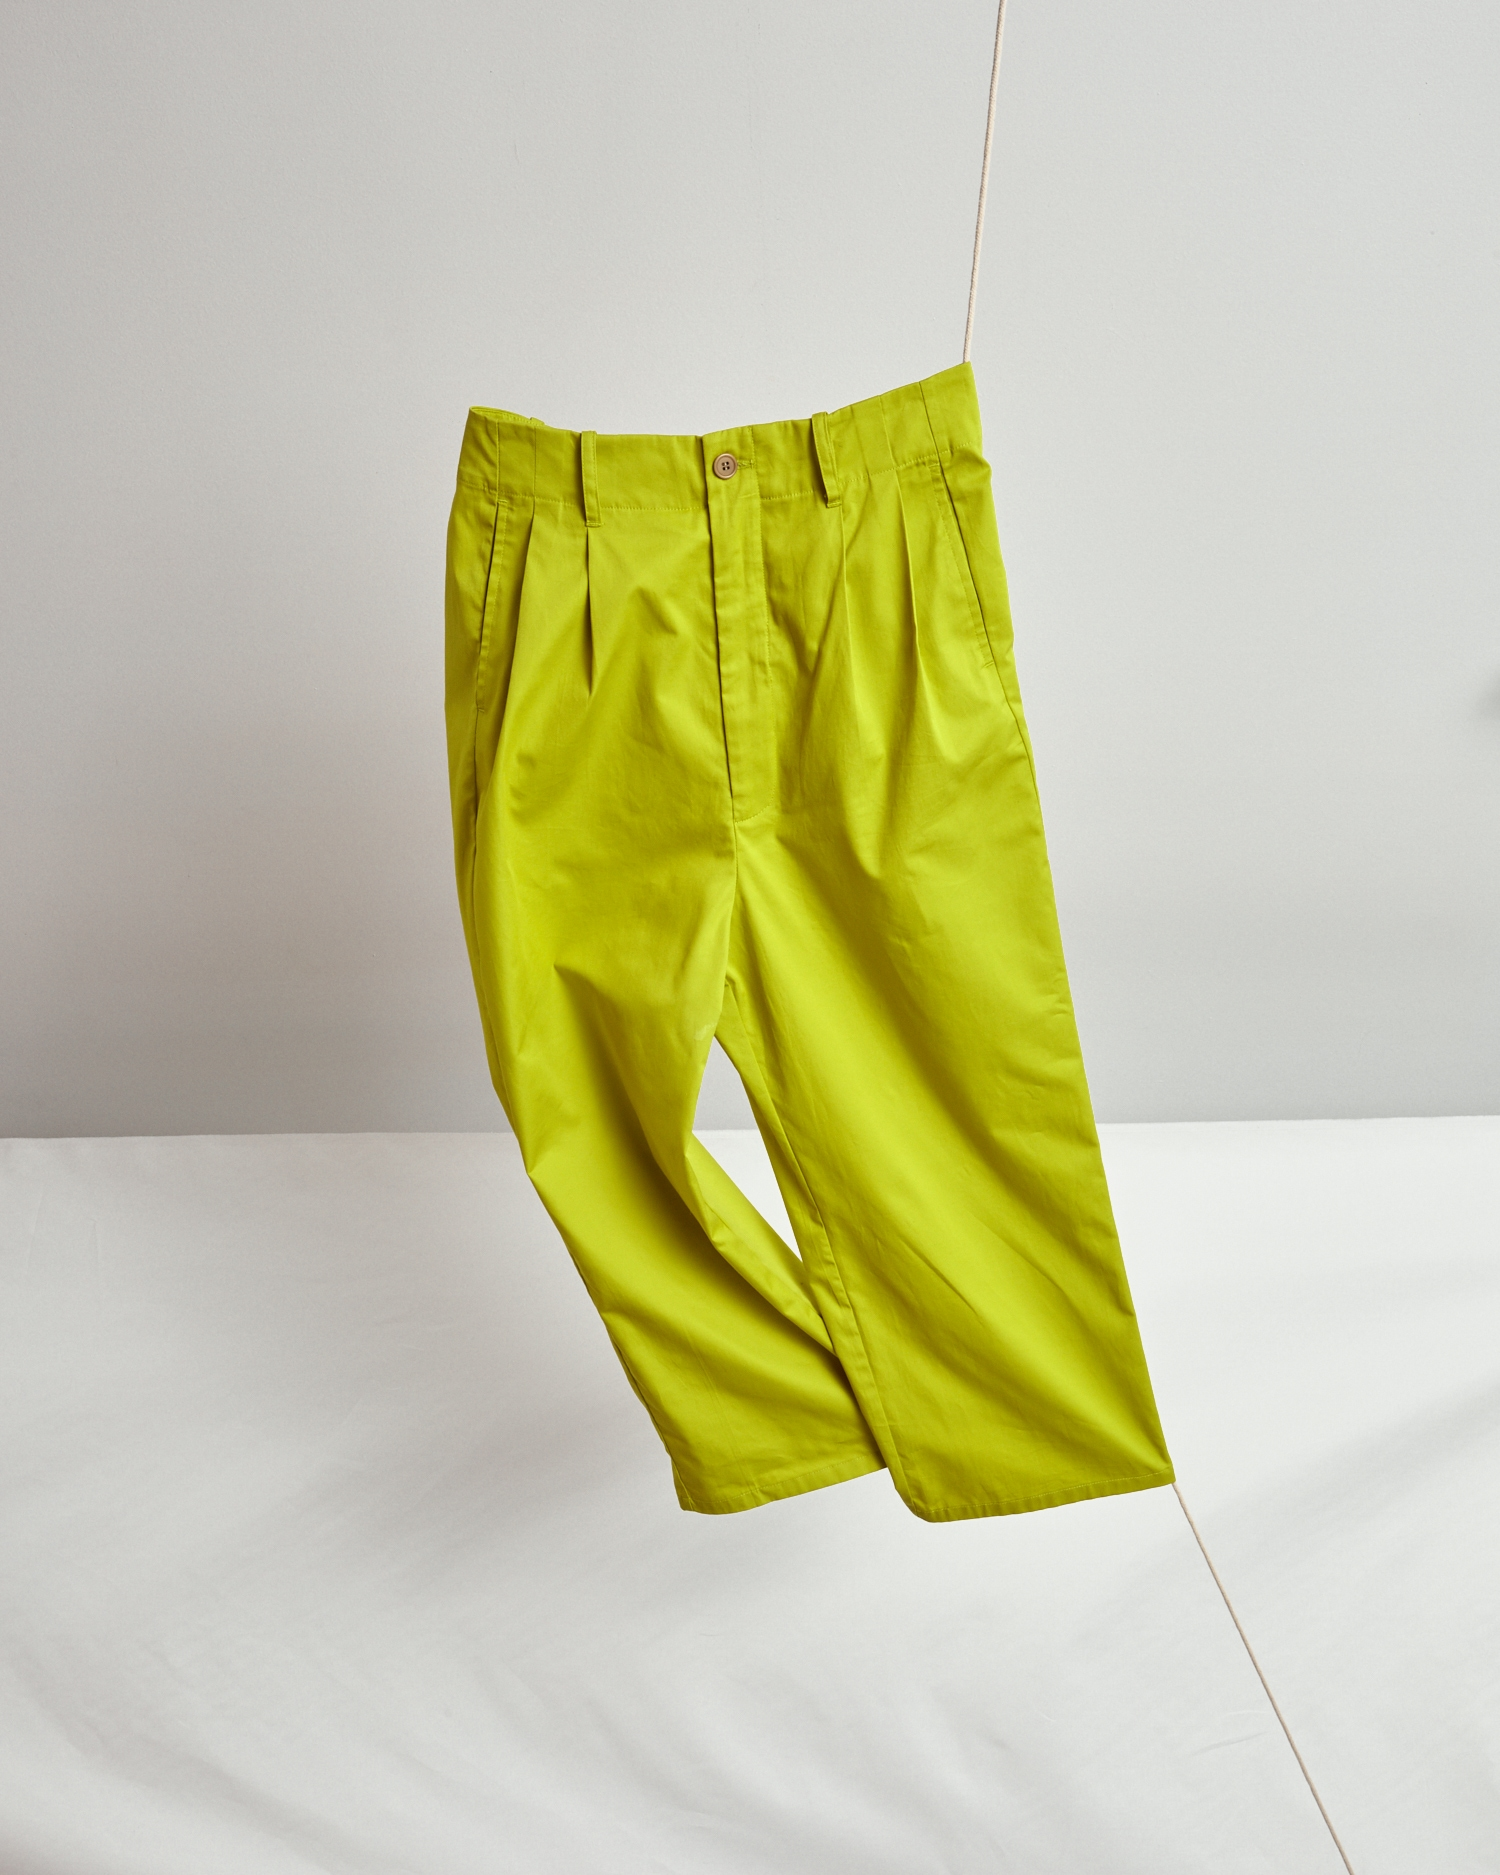 Shop Cropped, Wide-Leg Pant In Summer Weight Chartreuse By One DNA